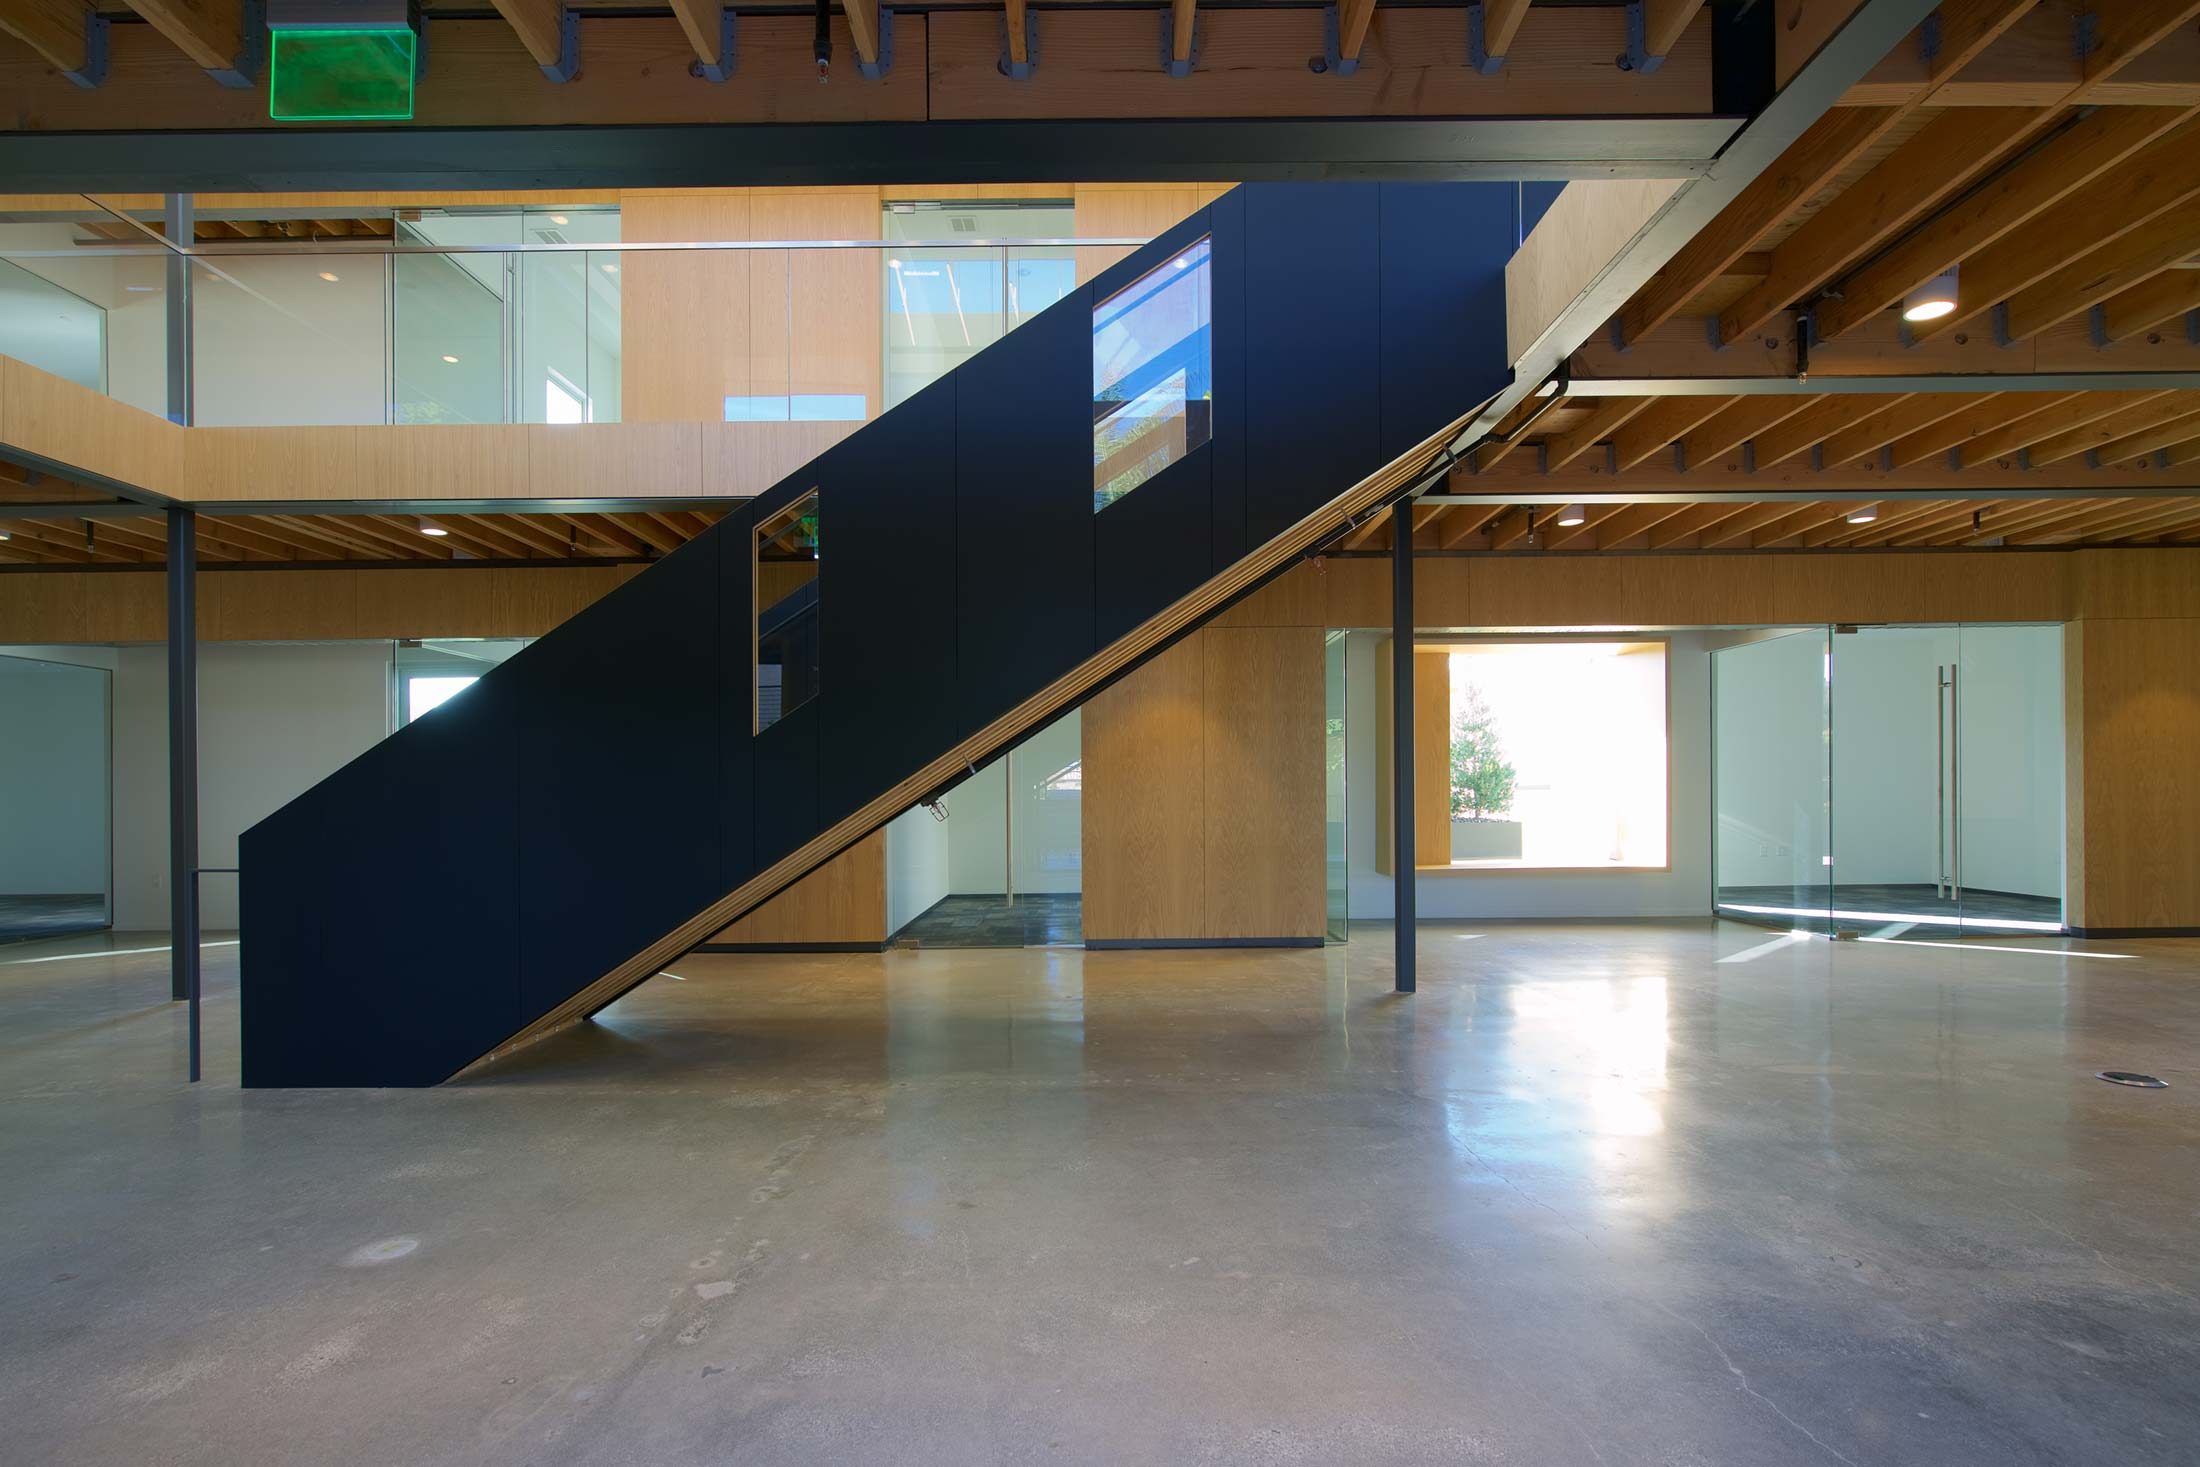 modern-architecture-building-adaptive-reuse-workplace-interior-shubindonaldson-motor-3